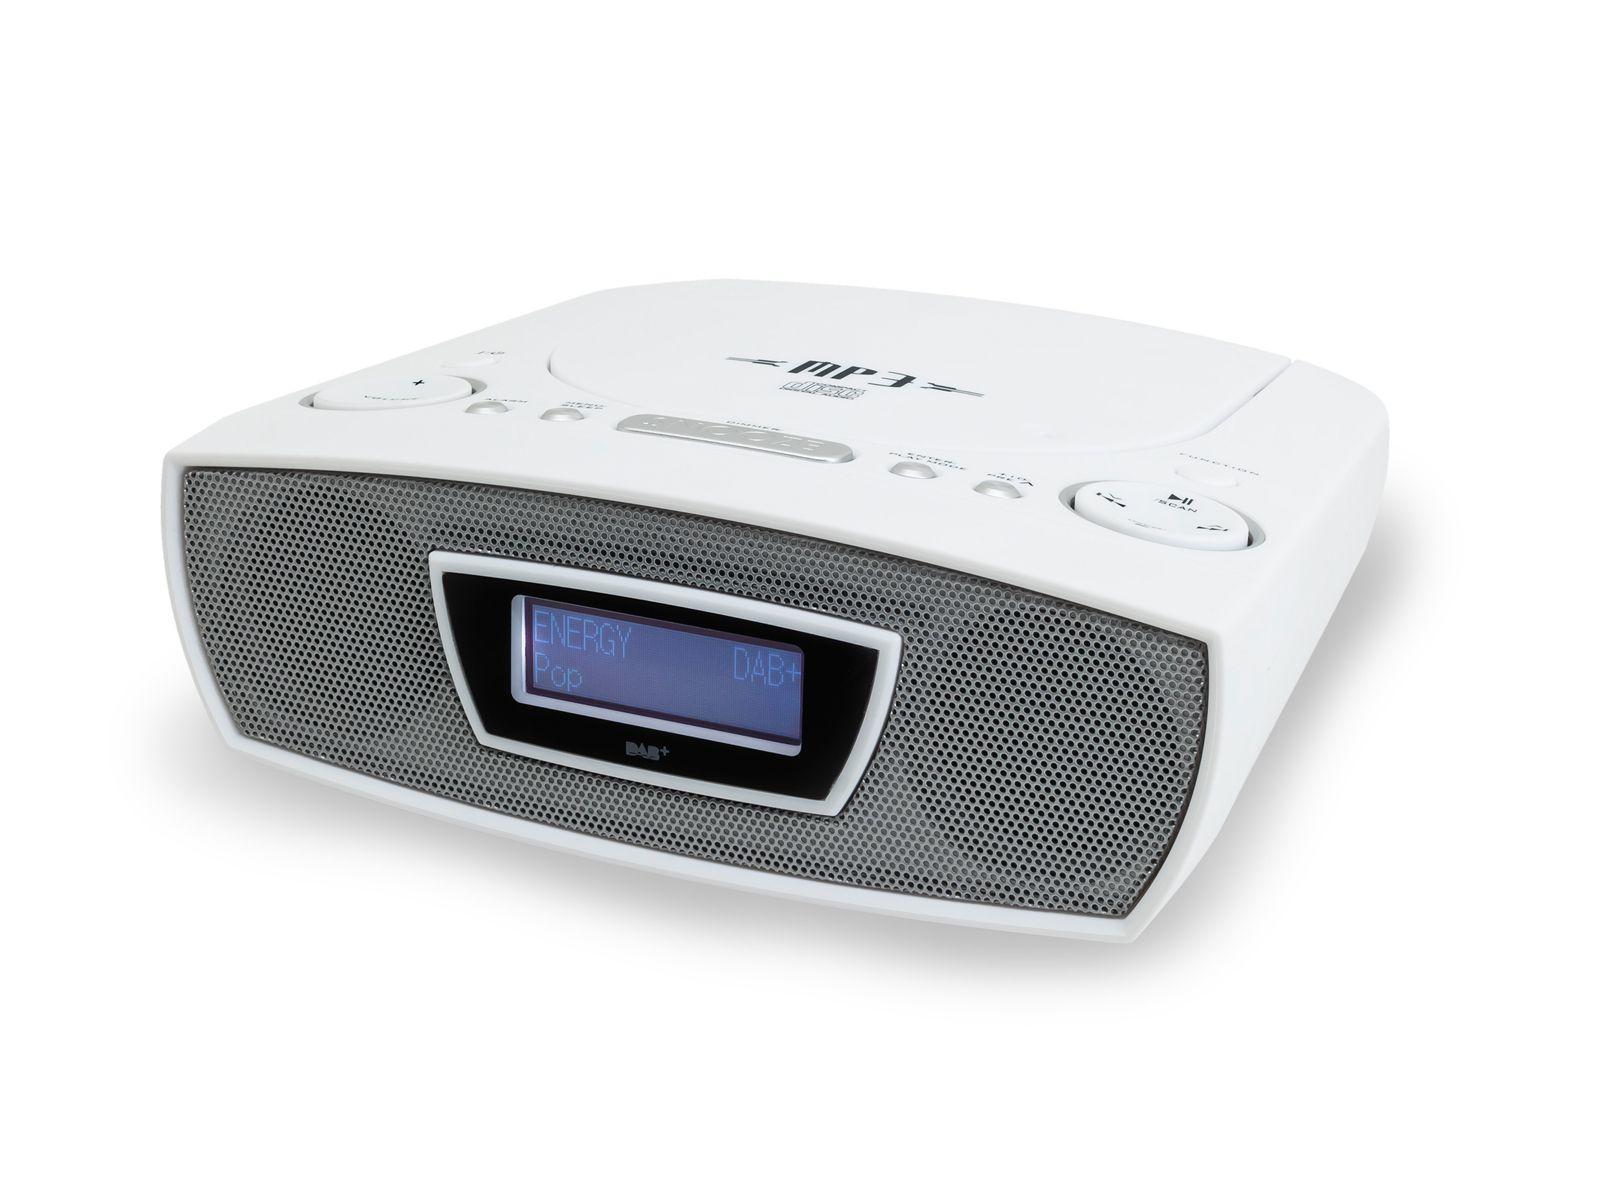 soundmaster URD480 FM / DAB Clock Radio & CD Player